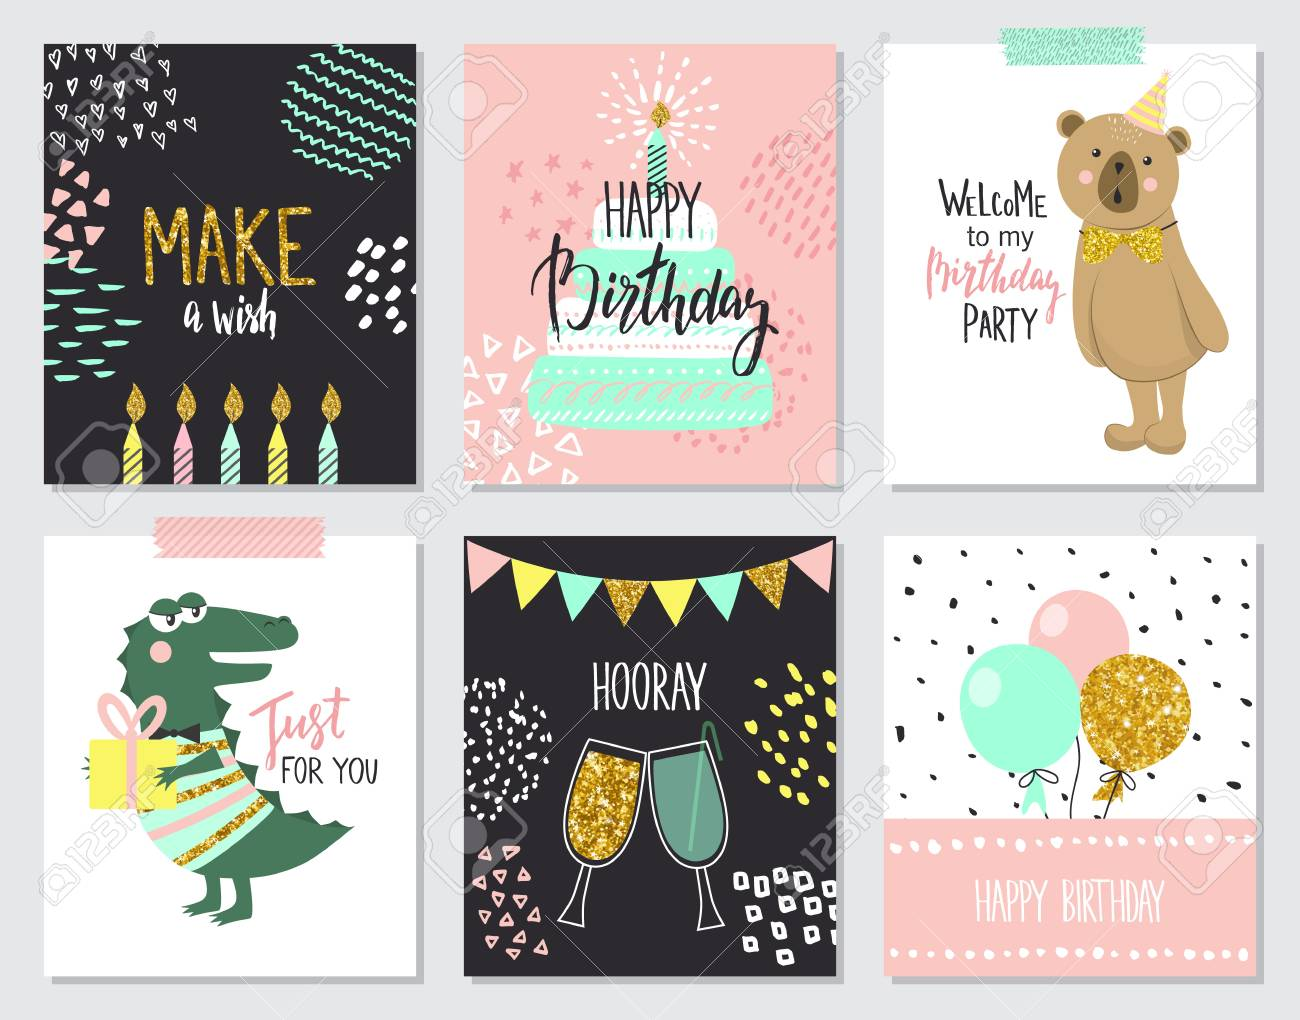 Groovy Happy Birthday Greeting Cards And Party Invitation Templates Funny Birthday Cards Online Fluifree Goldxyz